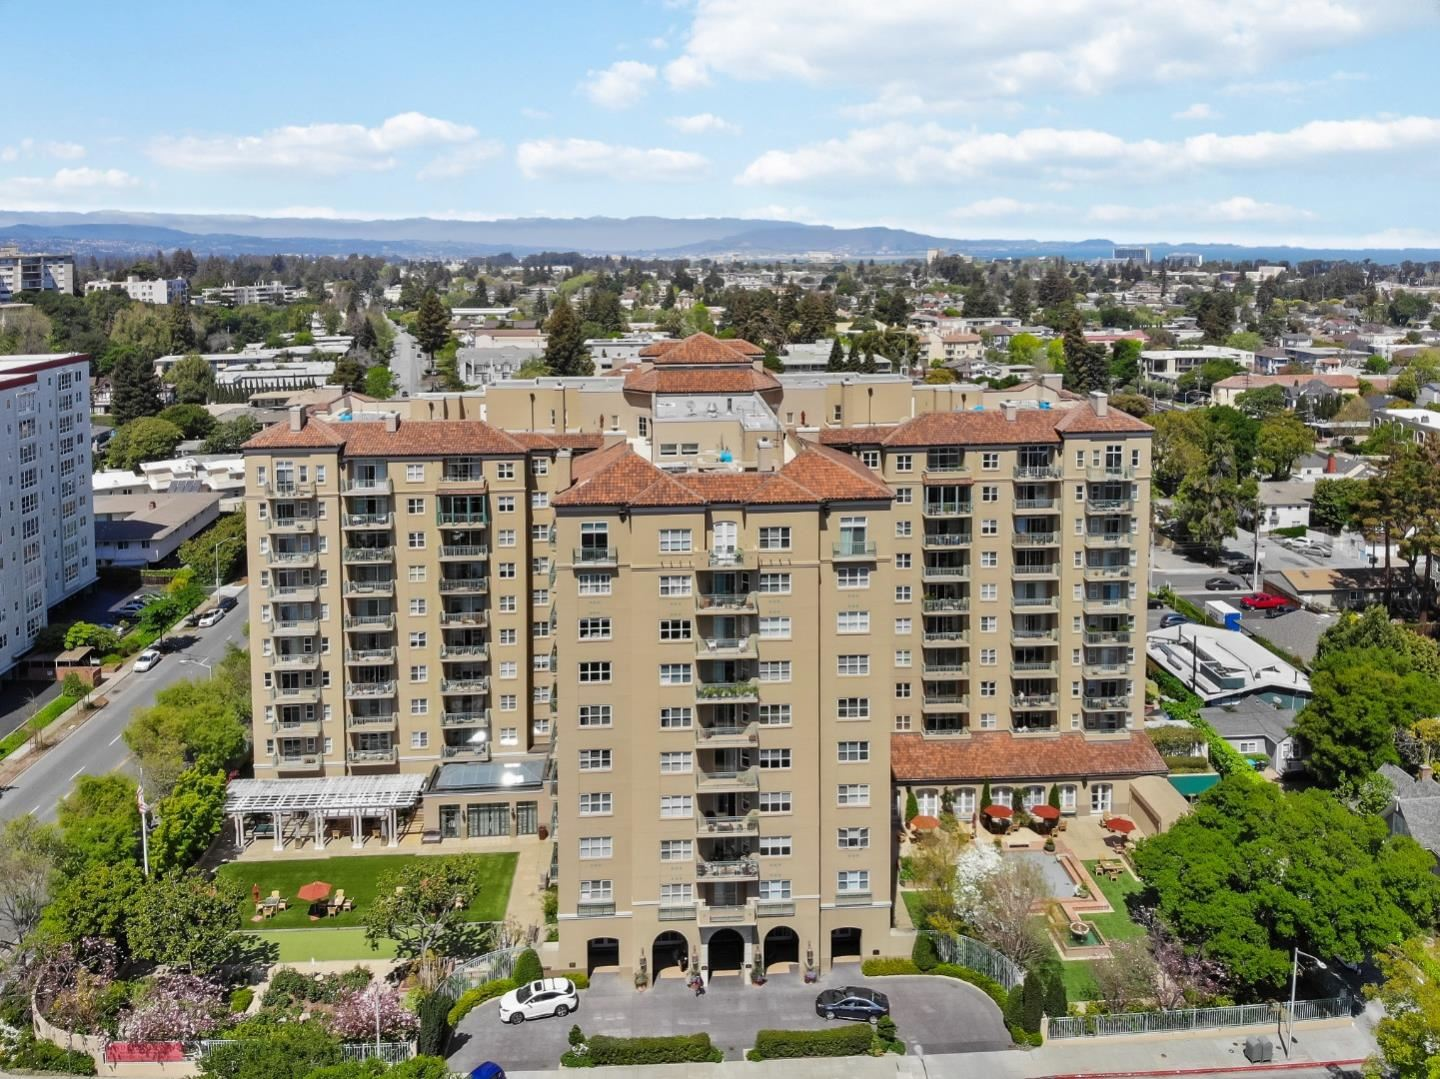 1 Baldwin Avenue #203, San Mateo, CA 94401 - #: ML81839745